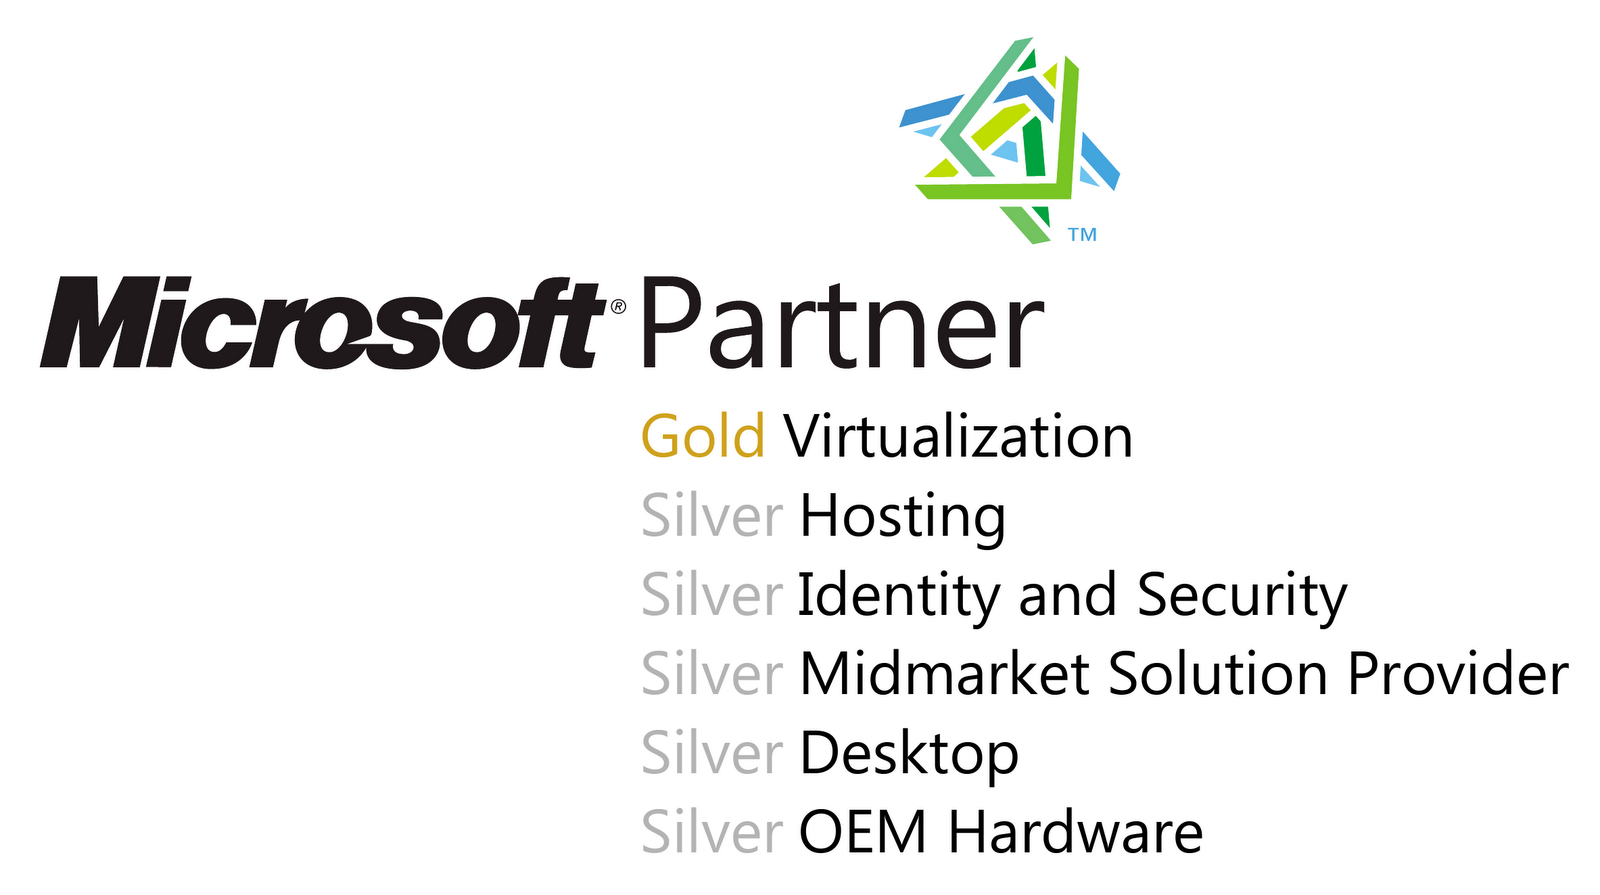 Medhurst achieves gold certification in virtualisation from medhurst a leading it solutions company in hampshire announced today it has achieved gold certification from microsoft in virtualisation 1betcityfo Images